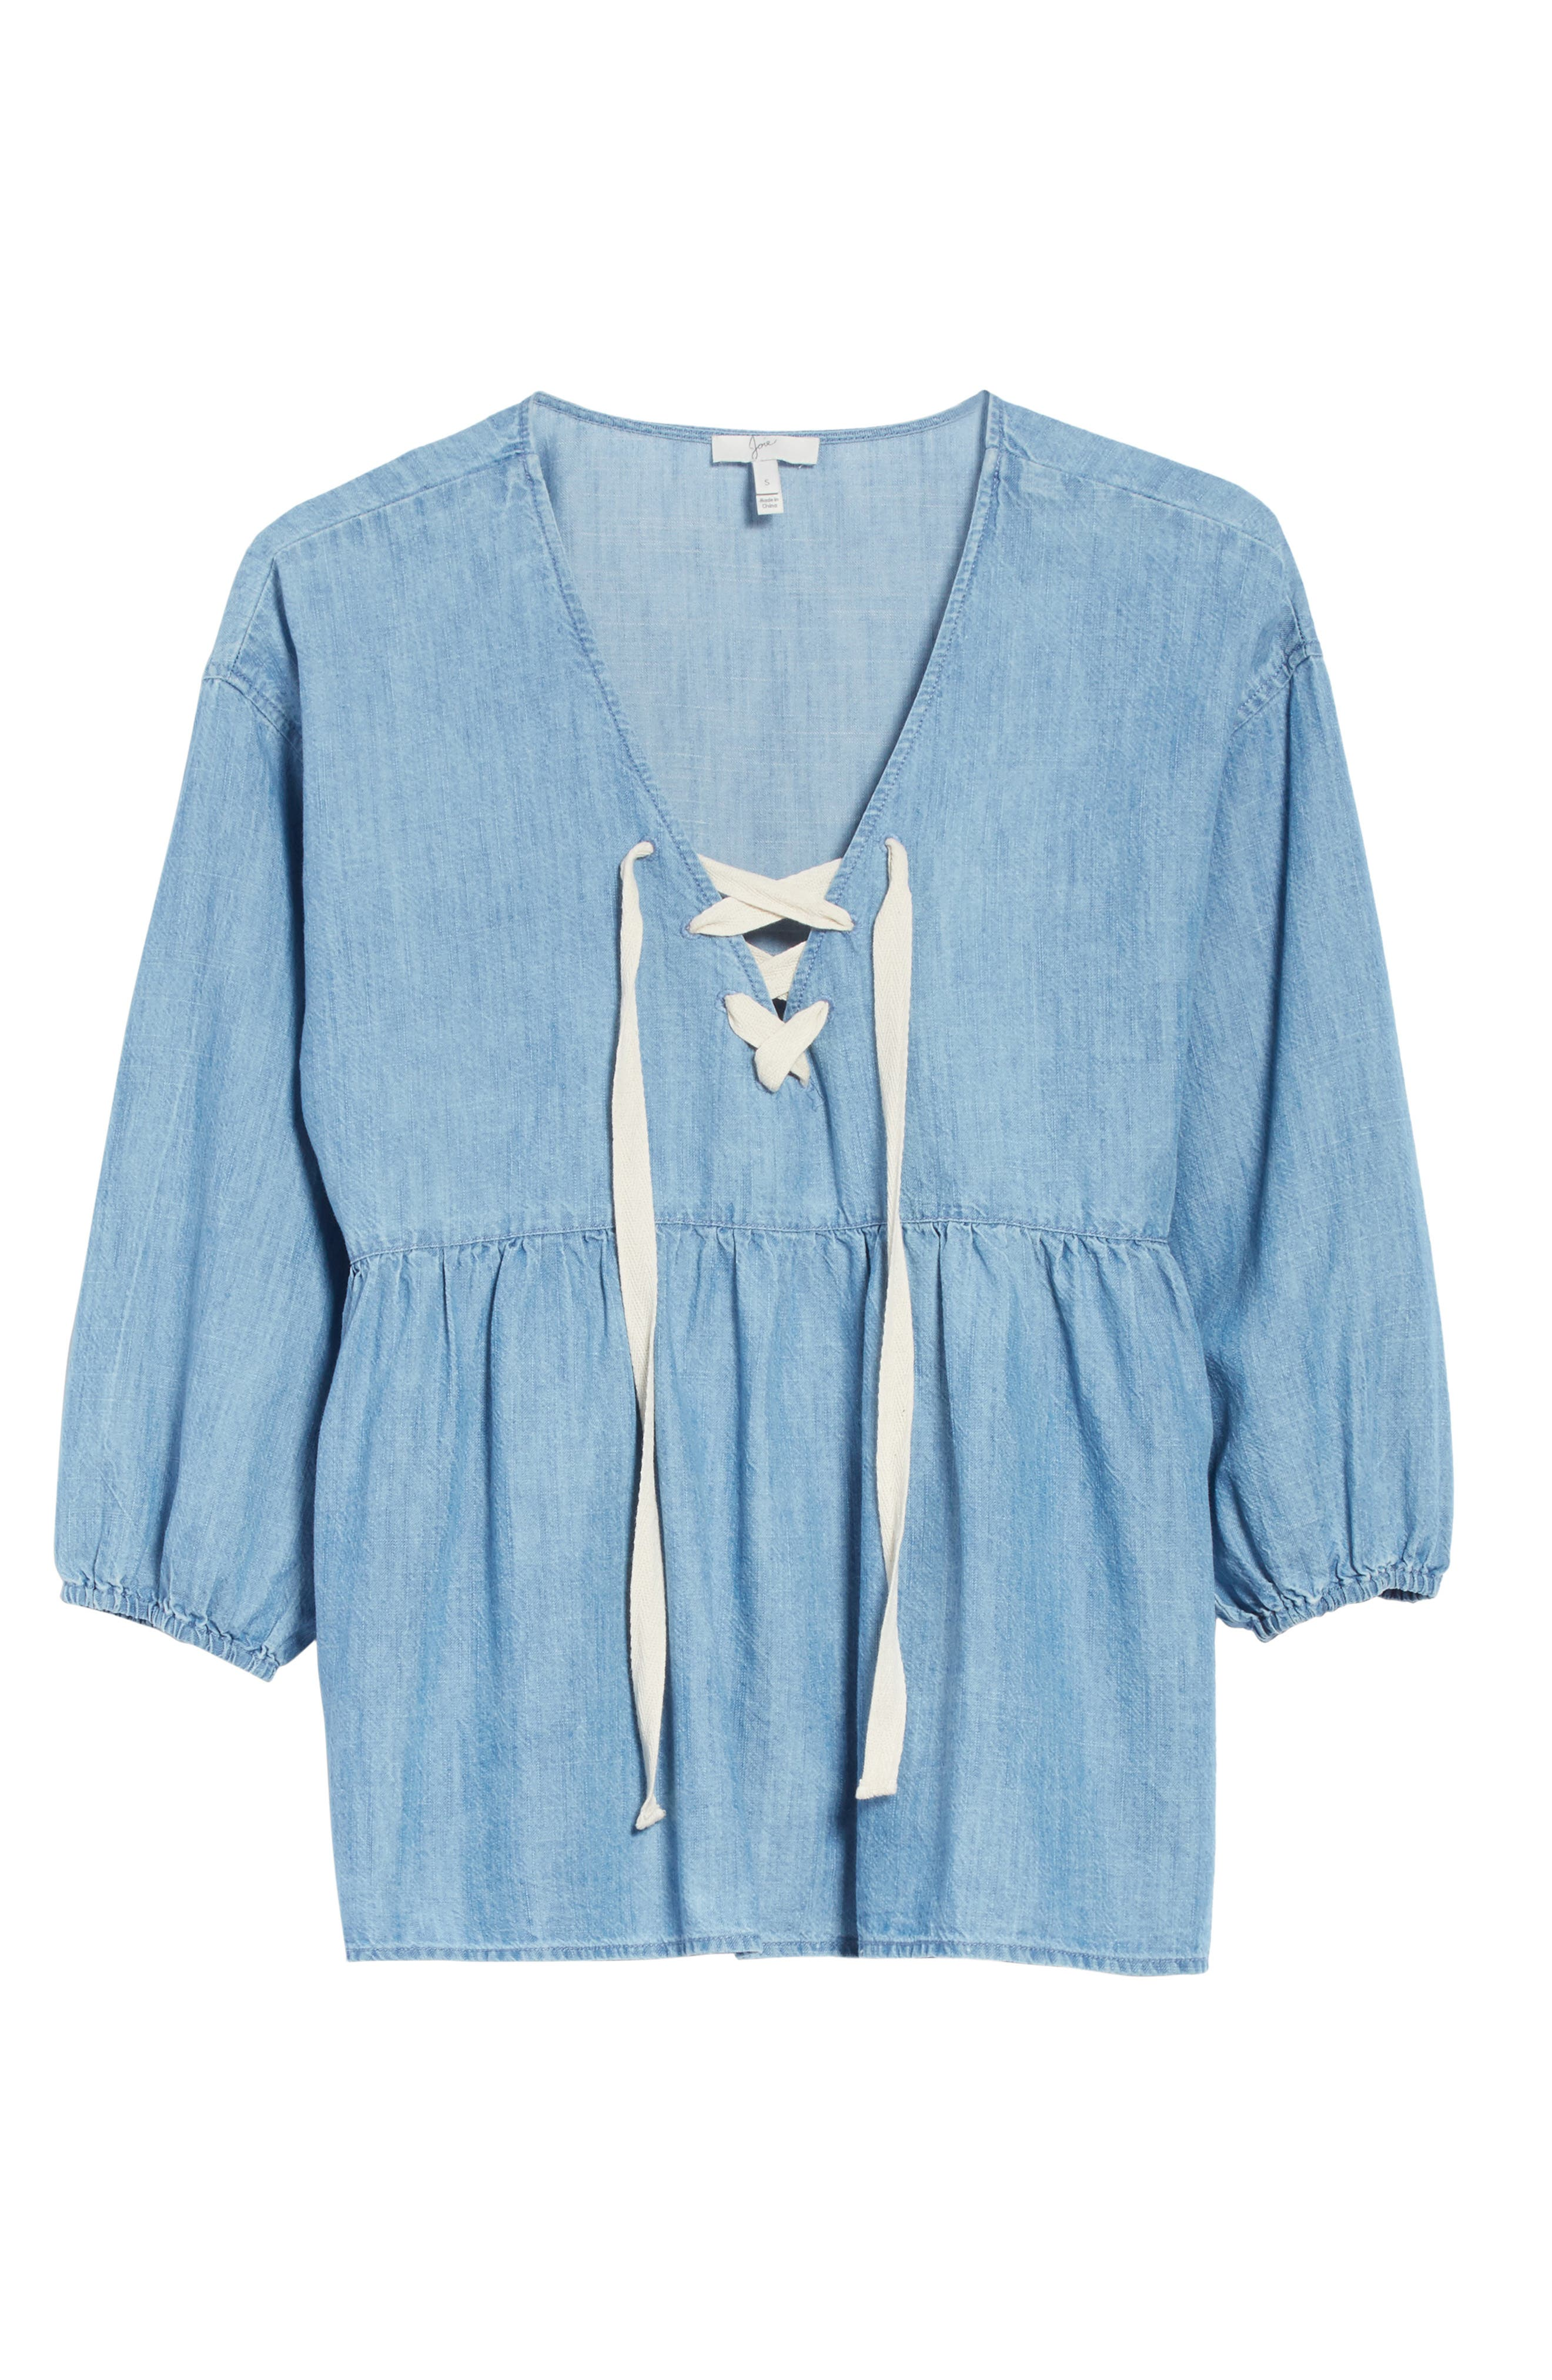 Bealette Lace-Up Chambray Top,                             Alternate thumbnail 6, color,                             481